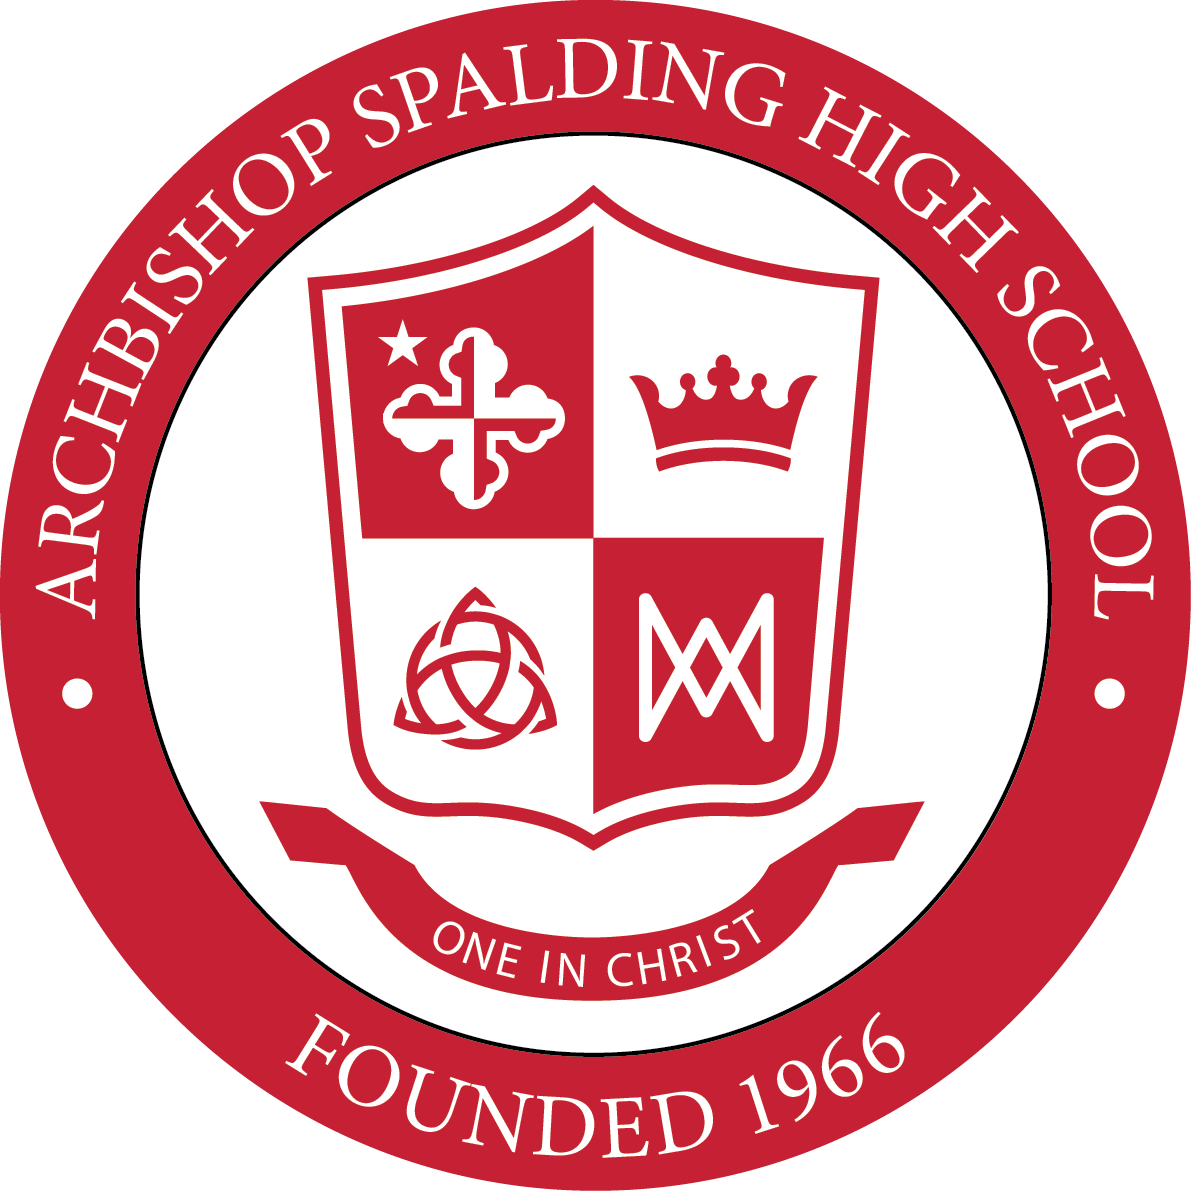 Archbishop Spalding High School